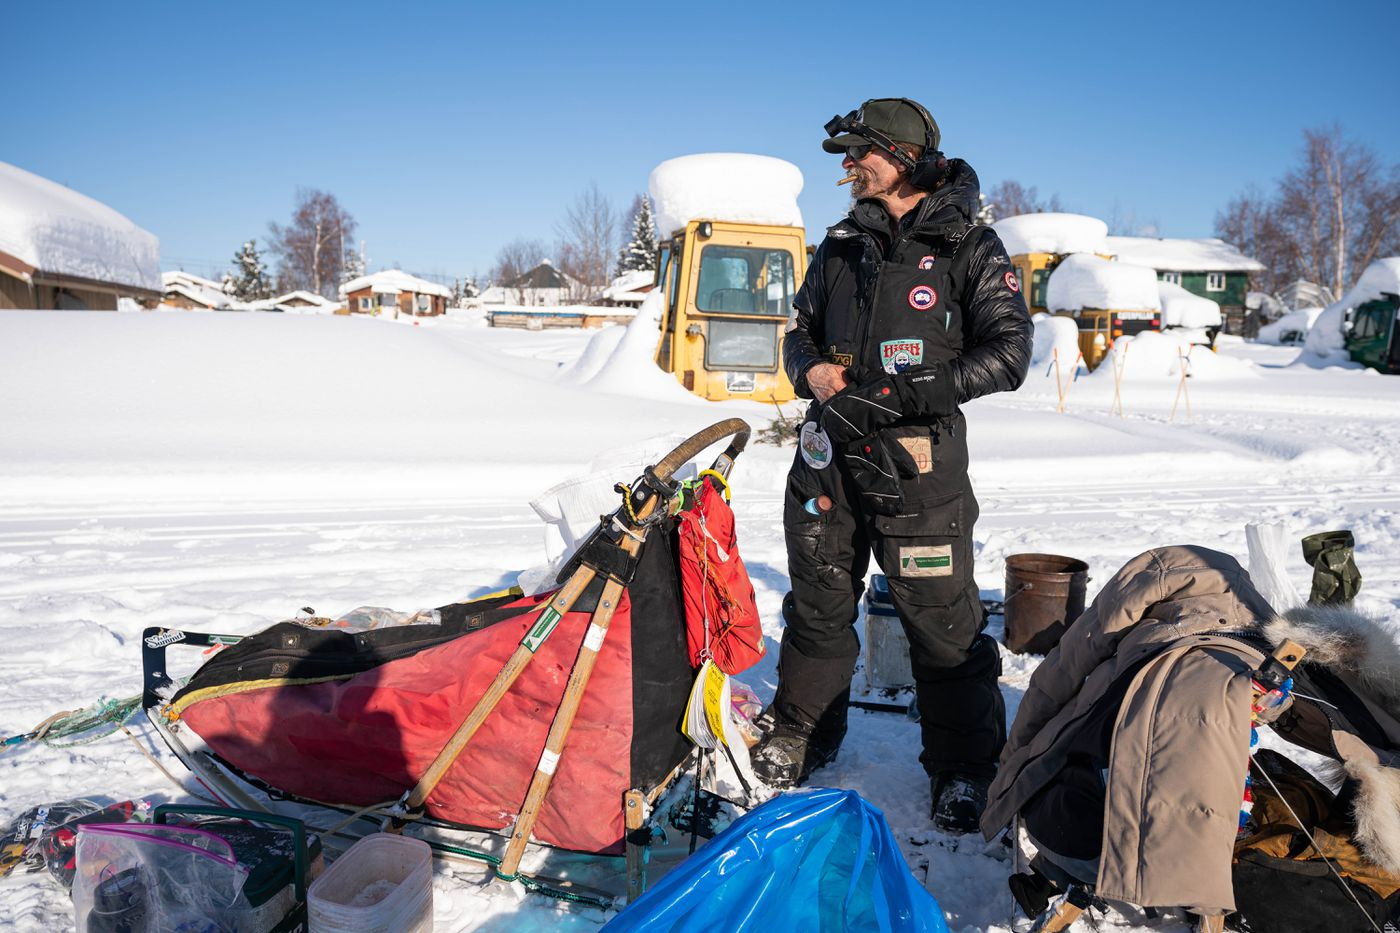 MARCH 10. Lance Mackey smokes a cigar while tending to his team in Nikolai during the Iditarod Trail Sled Dog Race. (Loren Holmes / ADN)